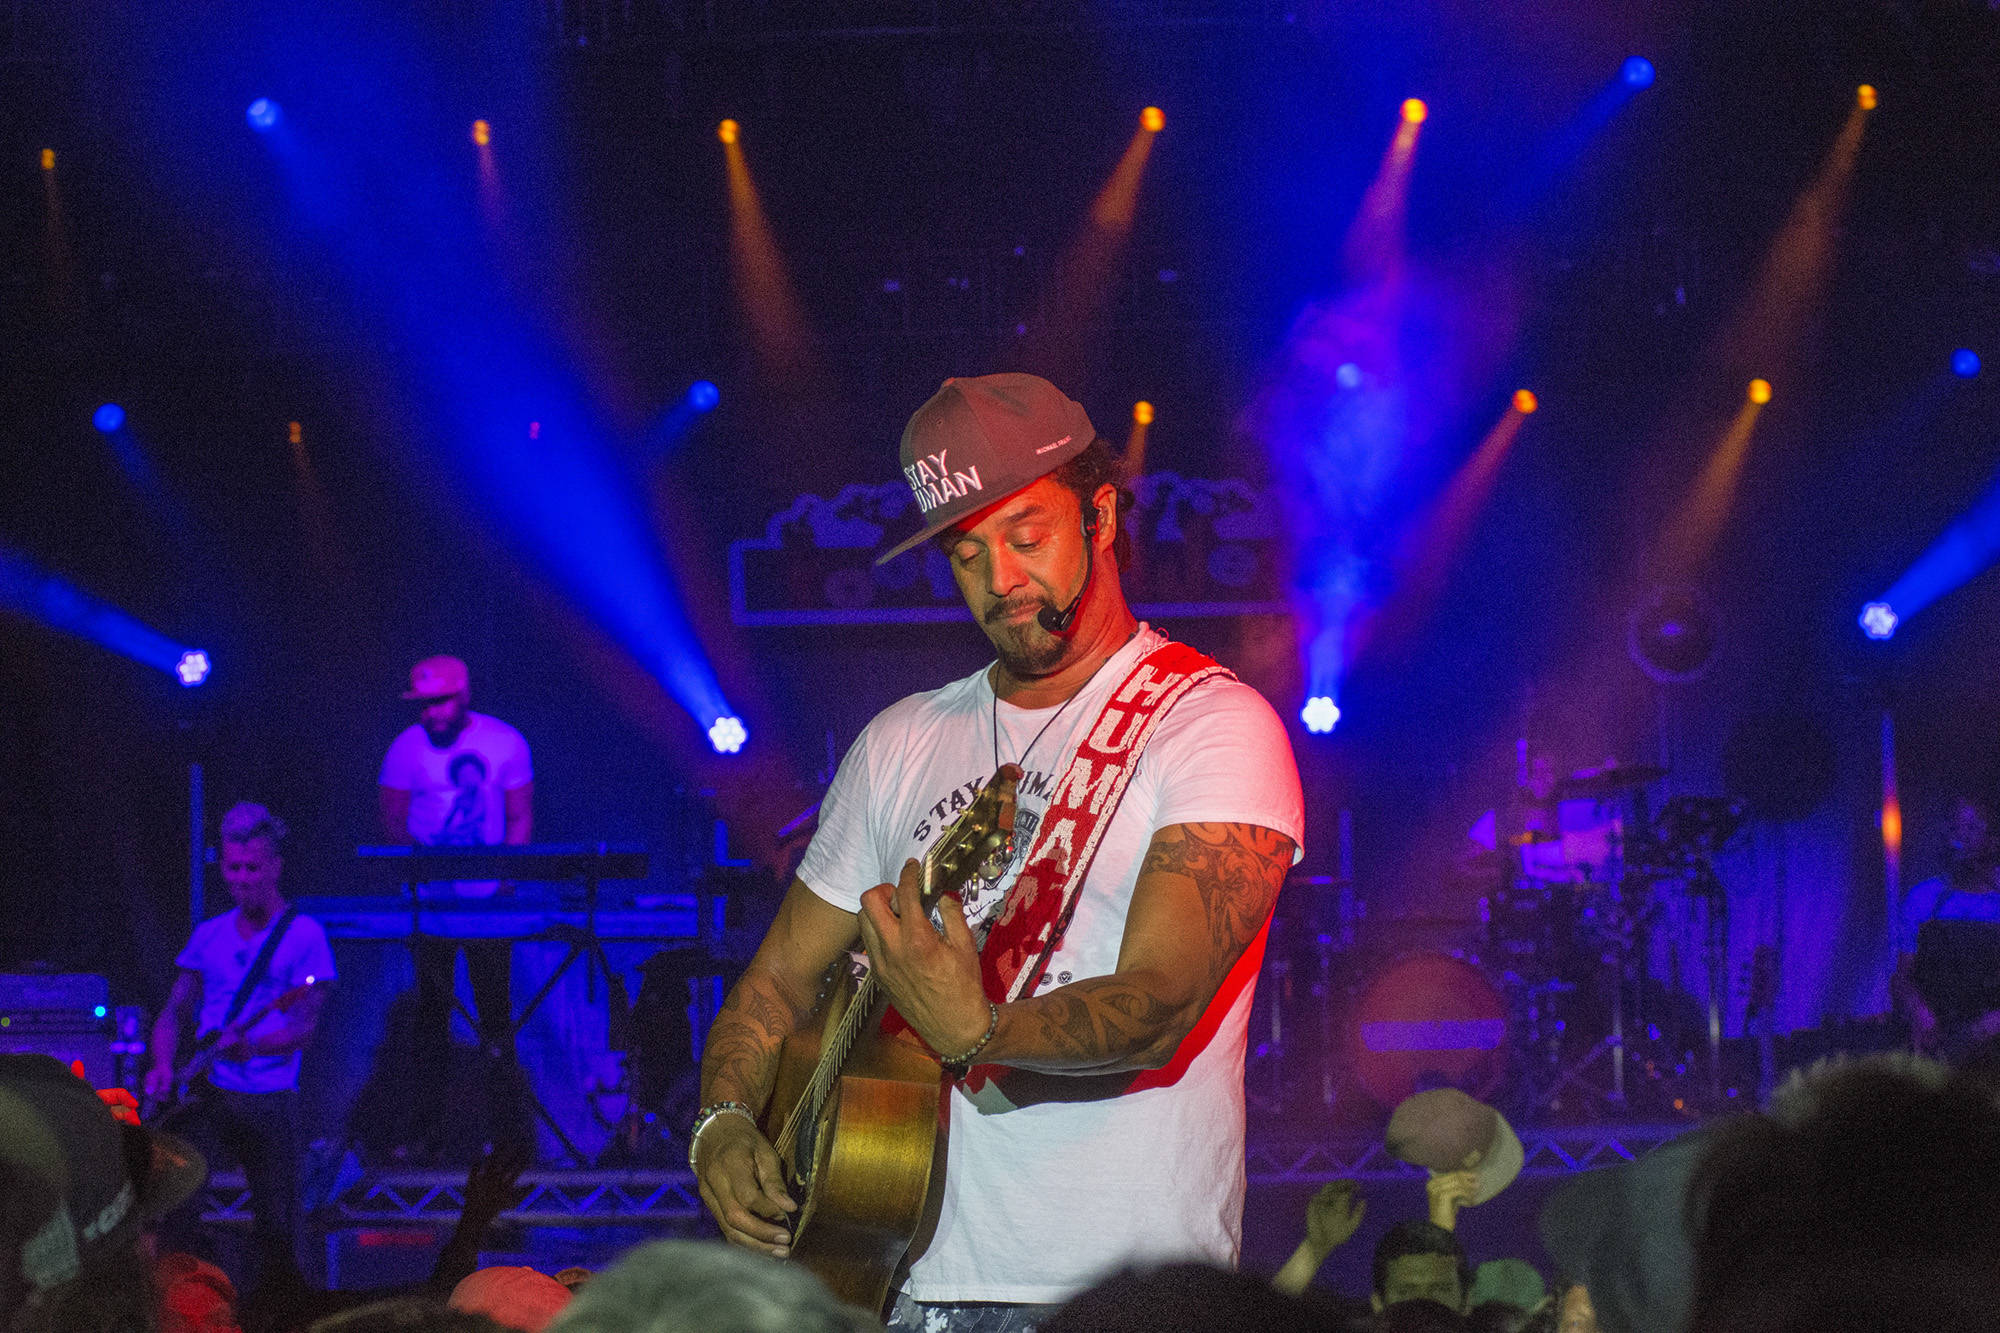 Michael Franti's main stage performance is one of the archived shows which will be streamed for the online 2020 Roots & Blues festival. ( File photo)